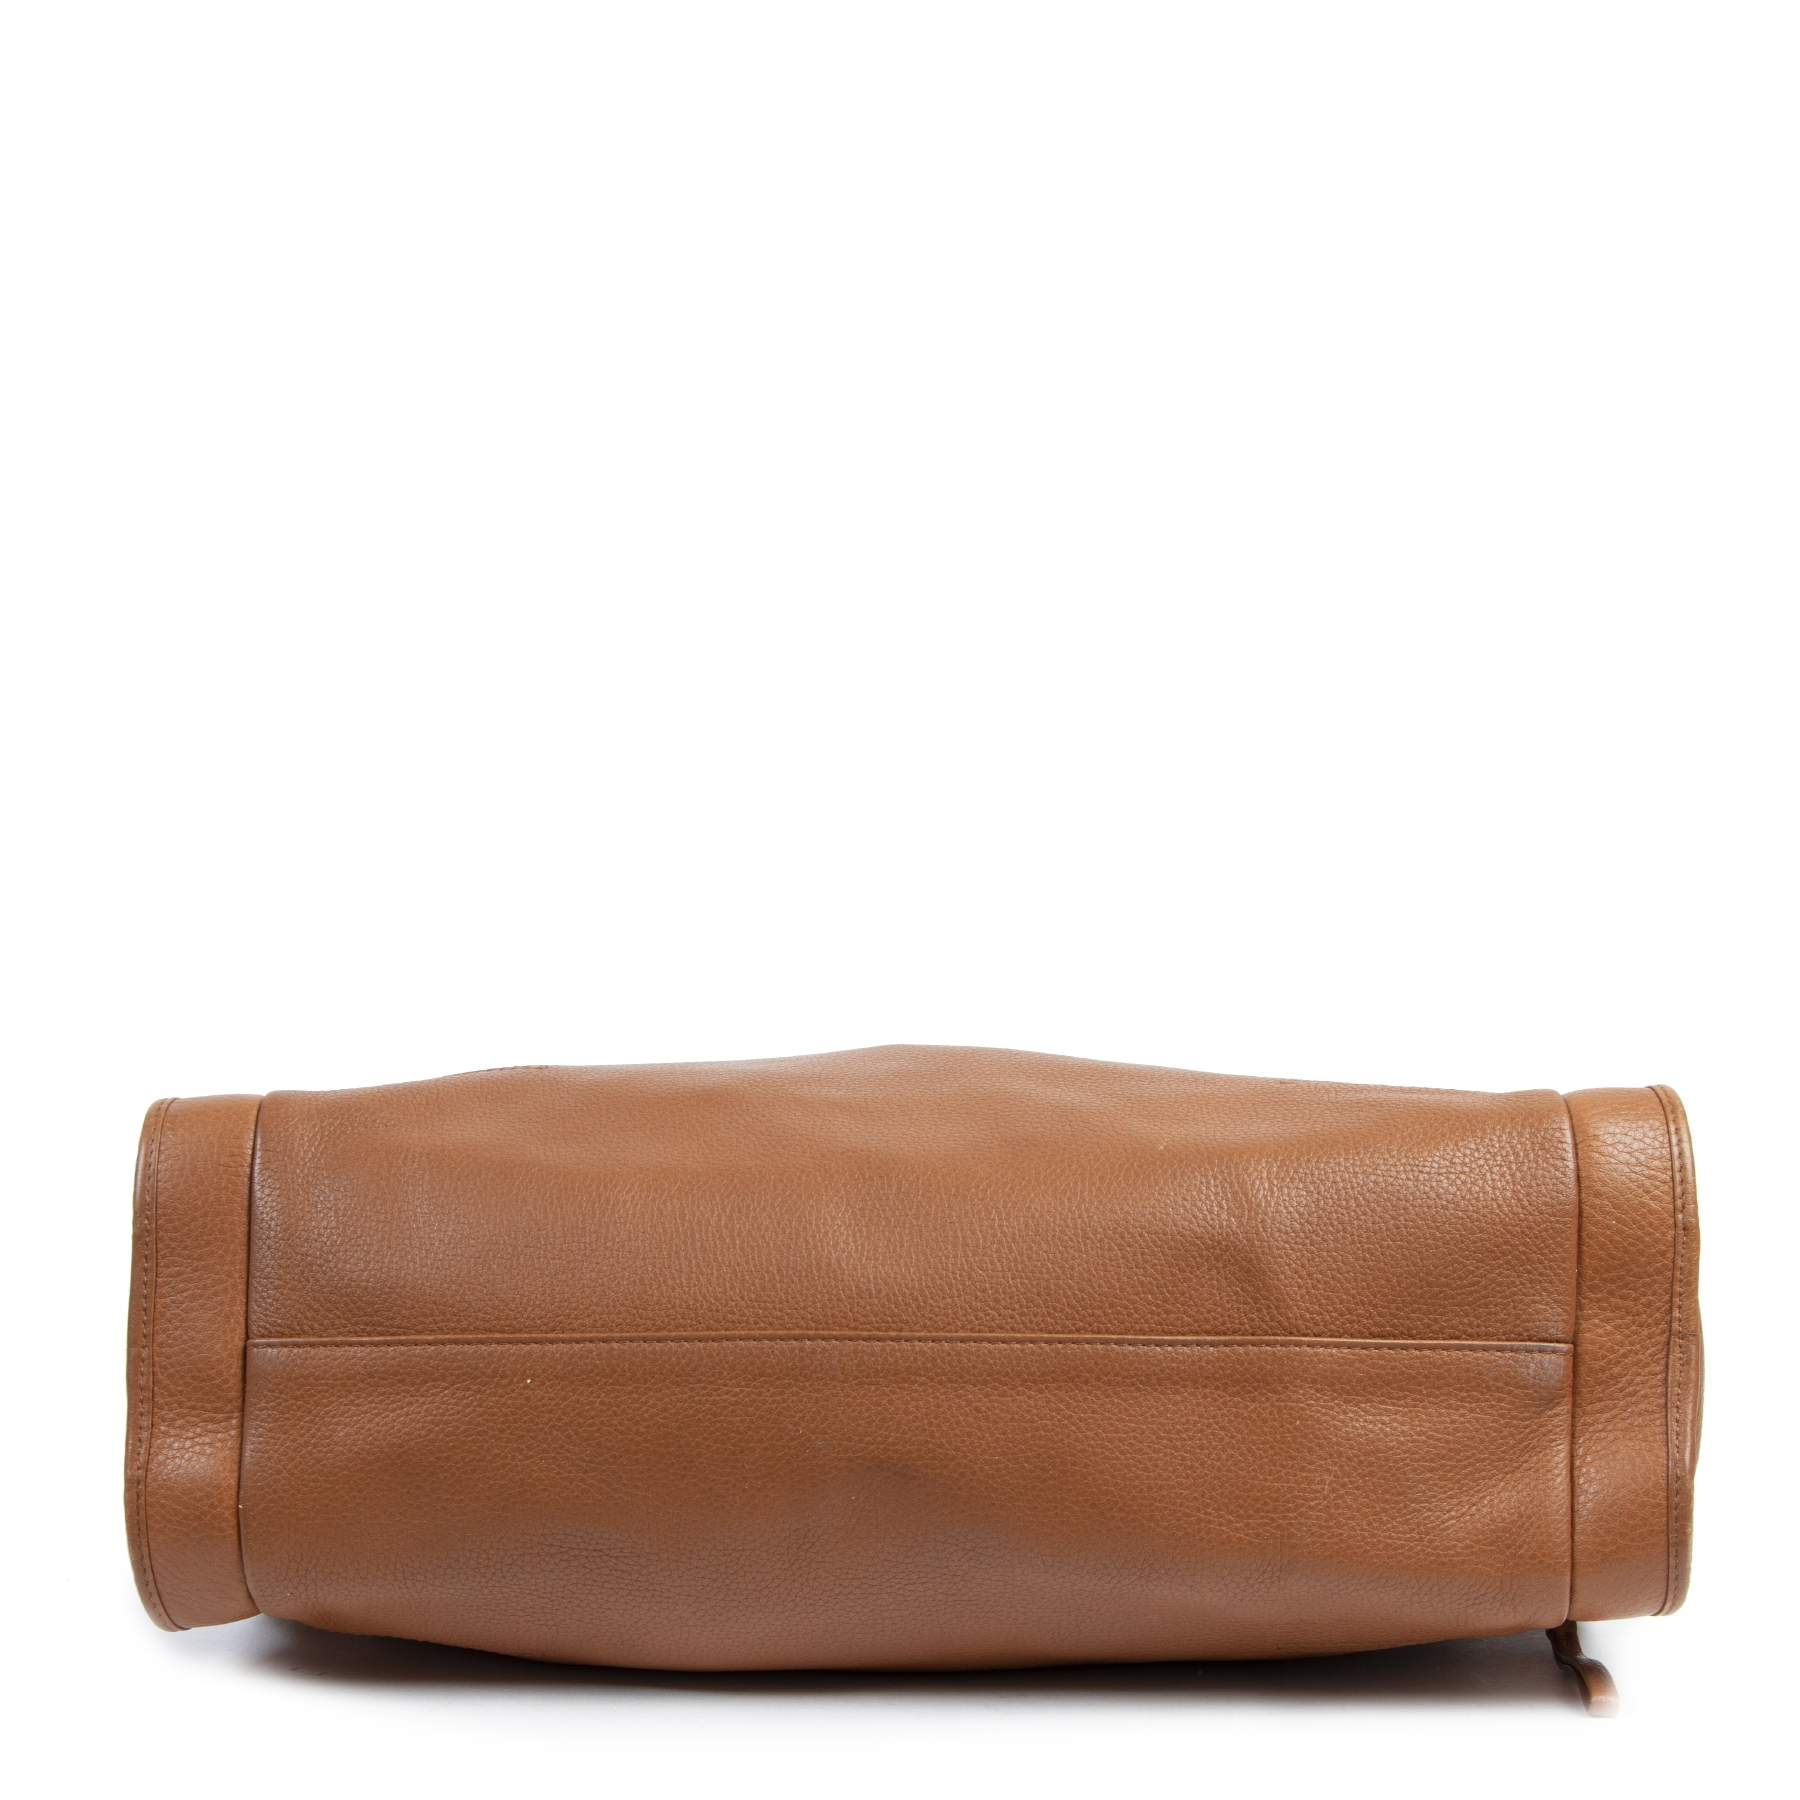 Authentique seconde-main vintage Delvaux Cognac Leather Shoulder Bag  achète en ligne webshop LabelLOV